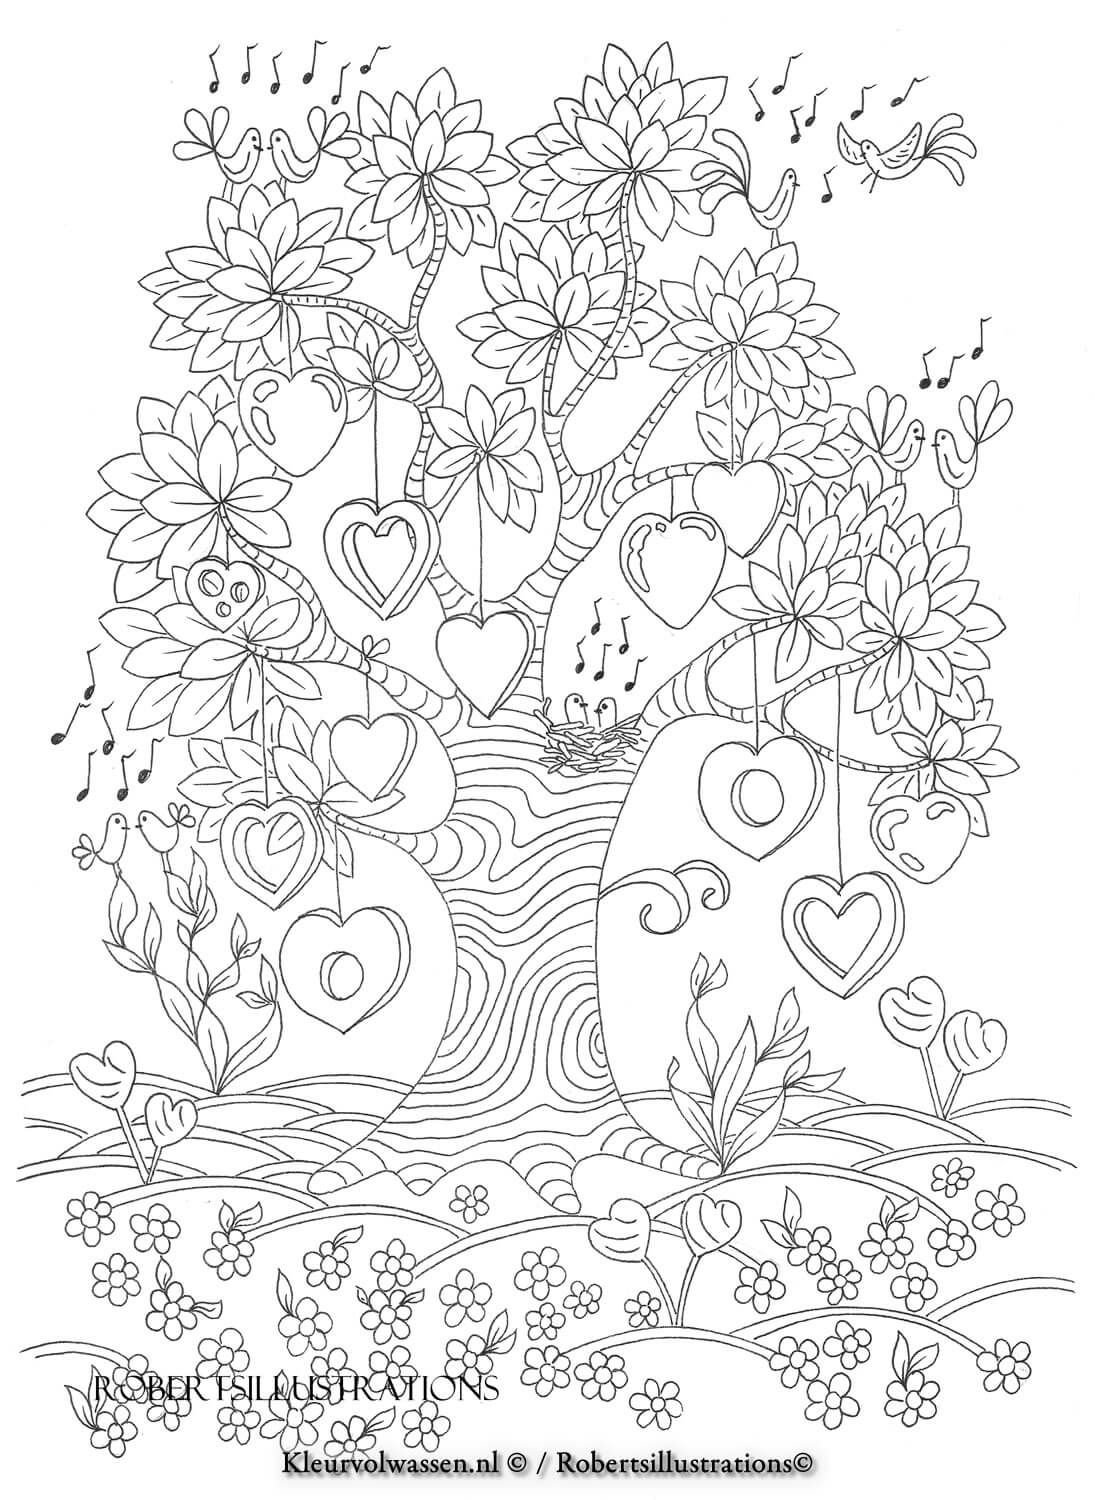 Pin By Cristina Bonome On Antistres Coloring Pages Coloring Book Art Coloring Books